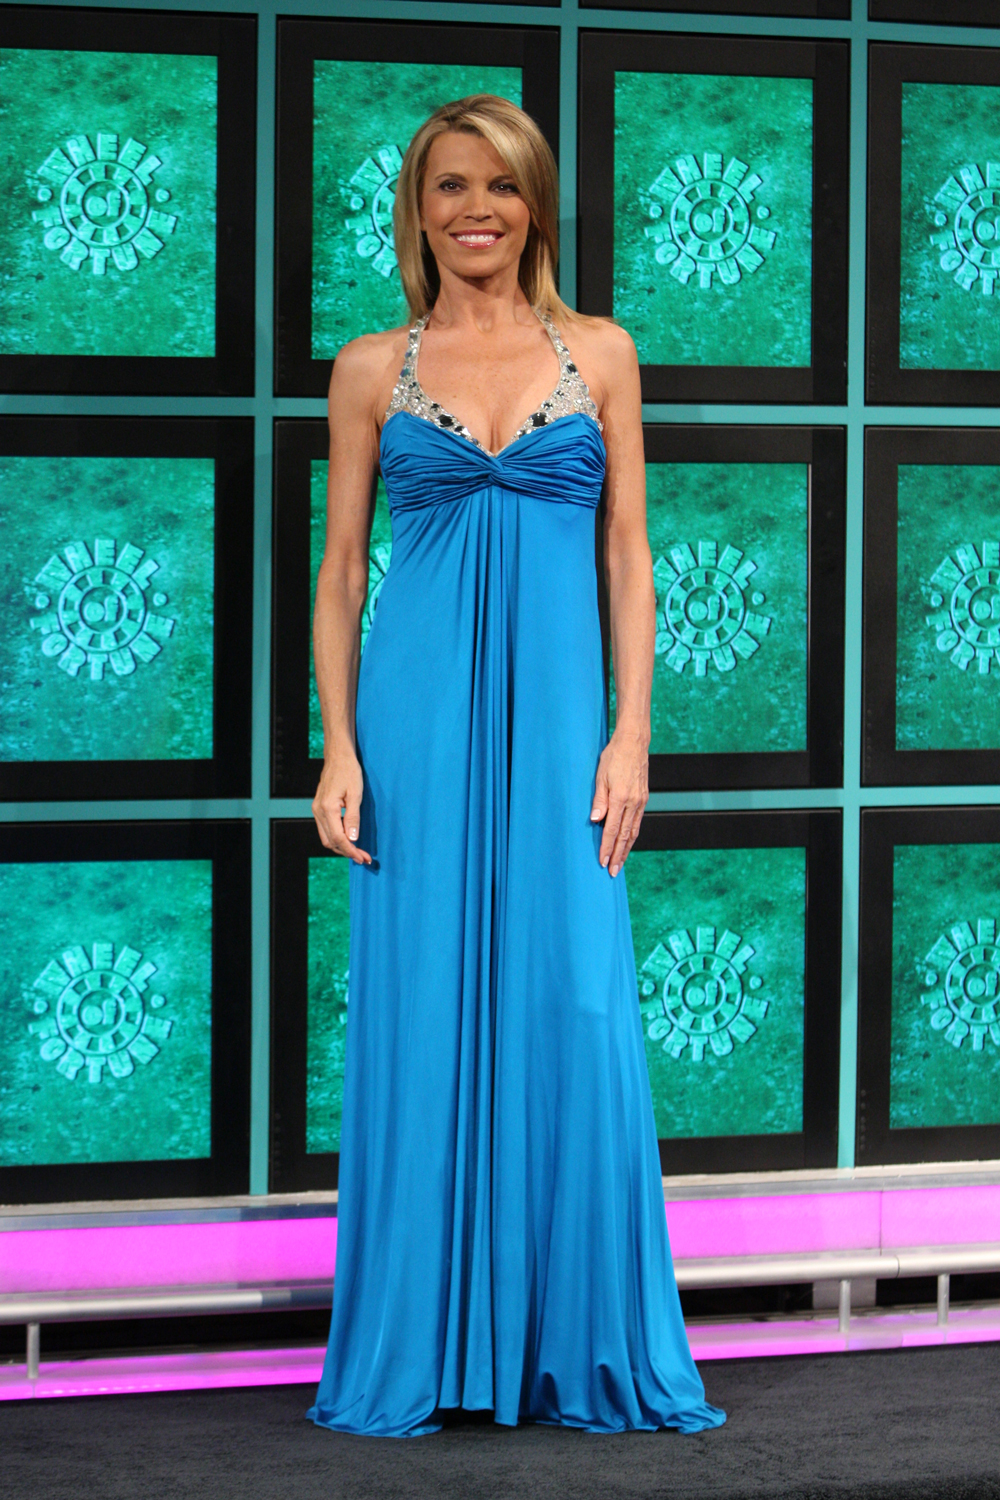 vanna white has worn more than 6500 gowns on wheel of